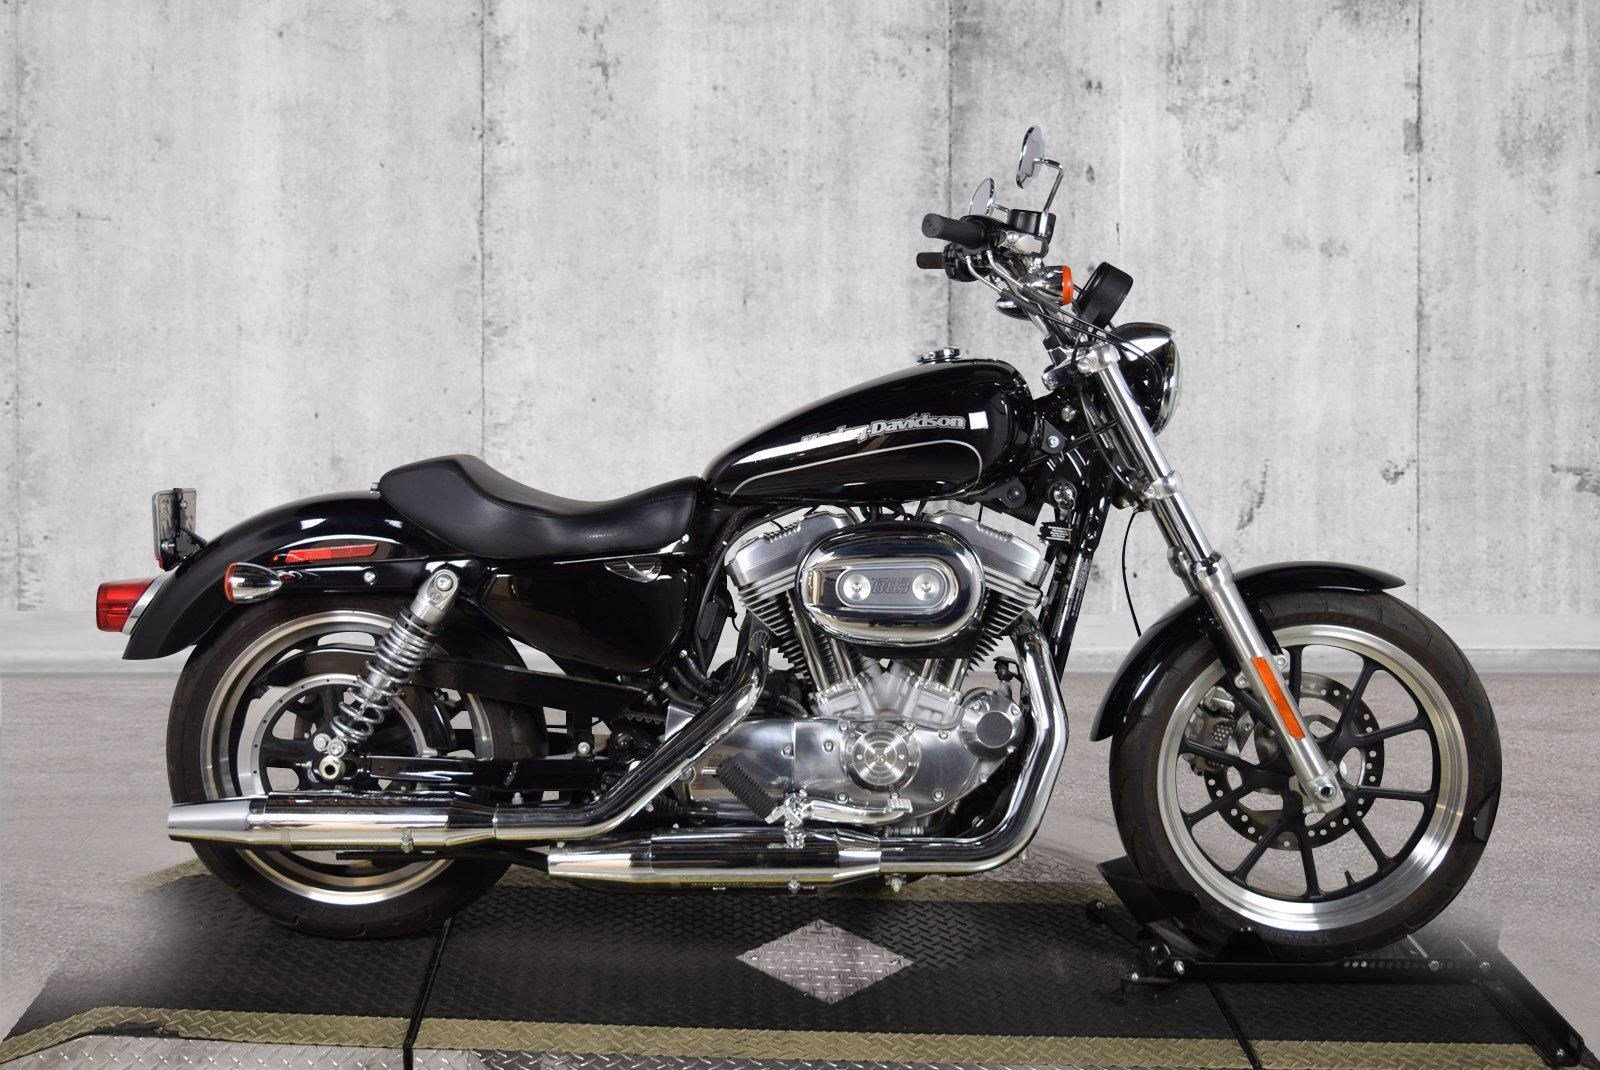 Pre-Owned 2016 Harley-Davidson Sportster 883 Superlow XL883L